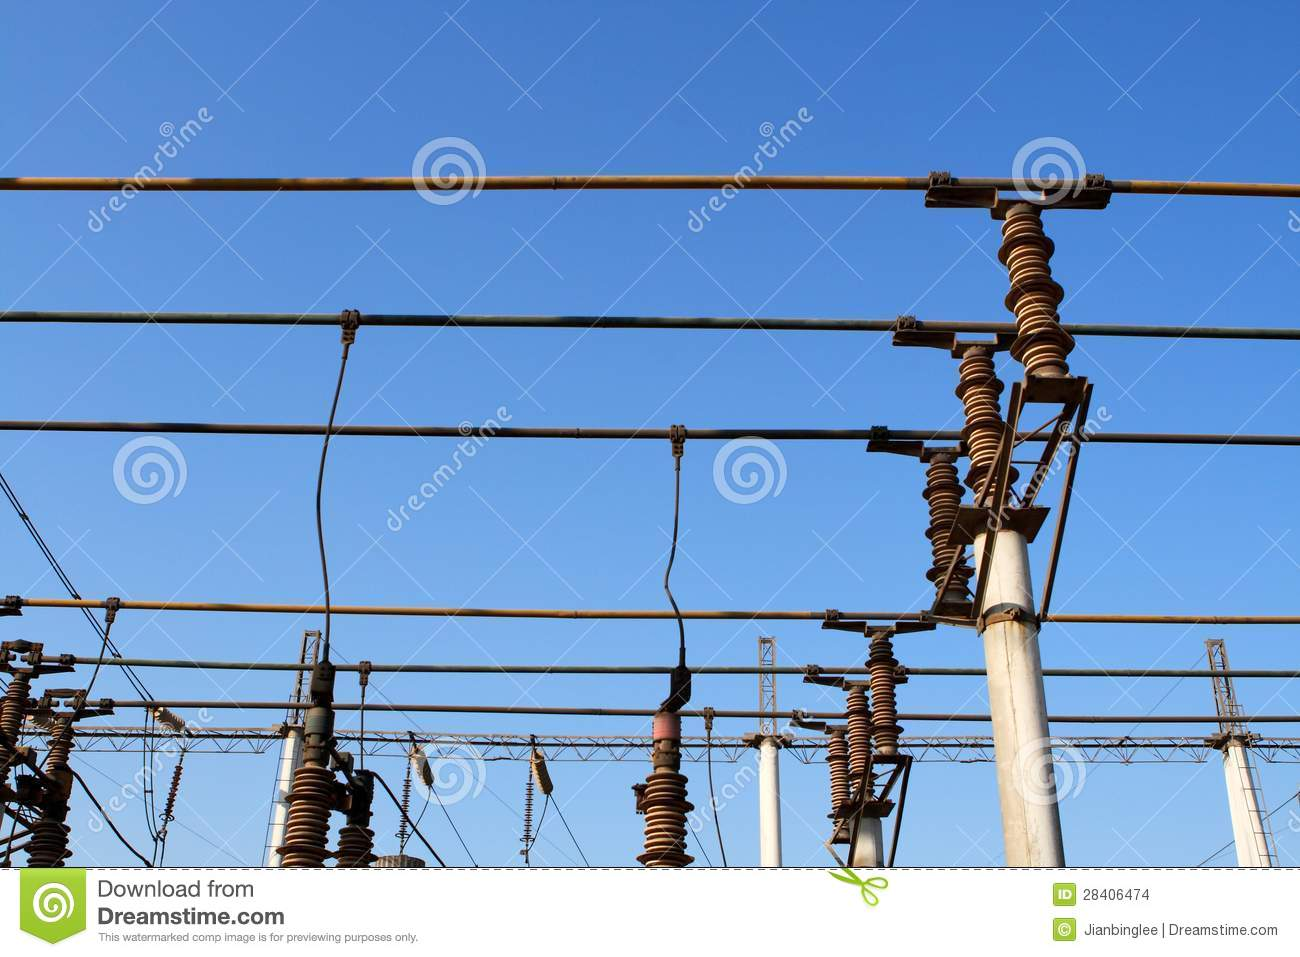 22kv Substation Equipment Stock Photography Auto Electrical Wiring Diagram